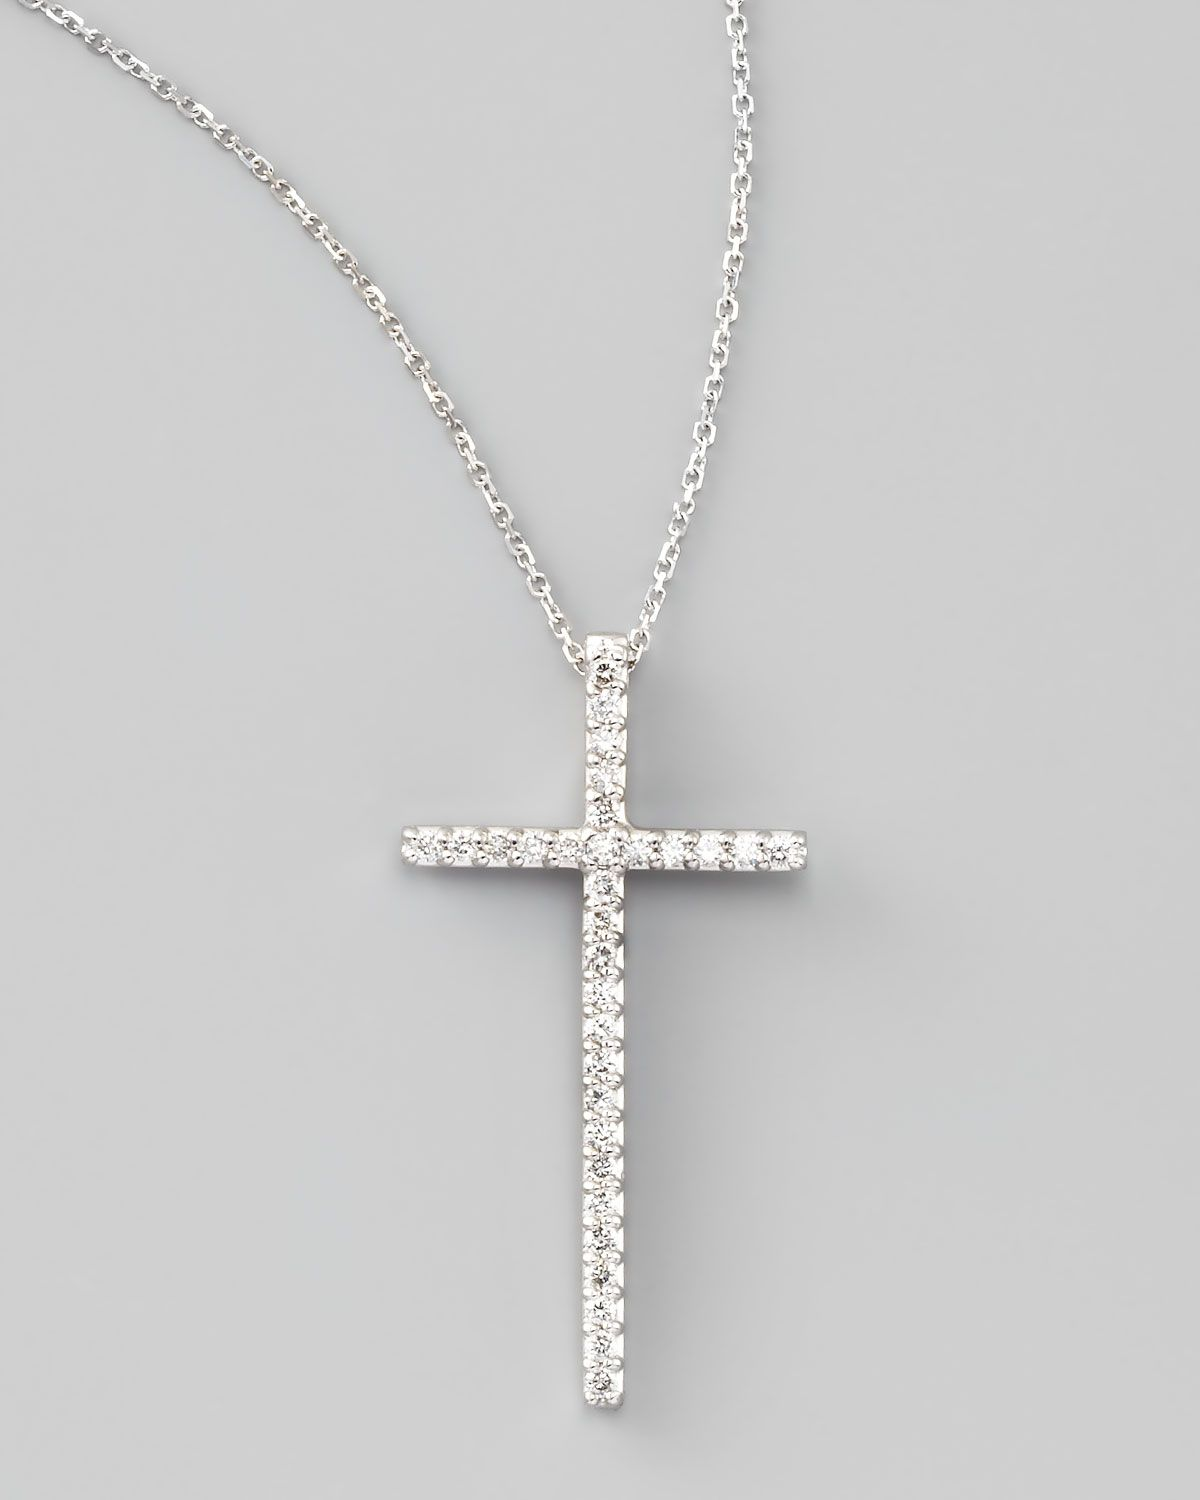 Httpharrislovekc designs large diamond cross pendant httpharrislovekc designs large diamond mozeypictures Gallery